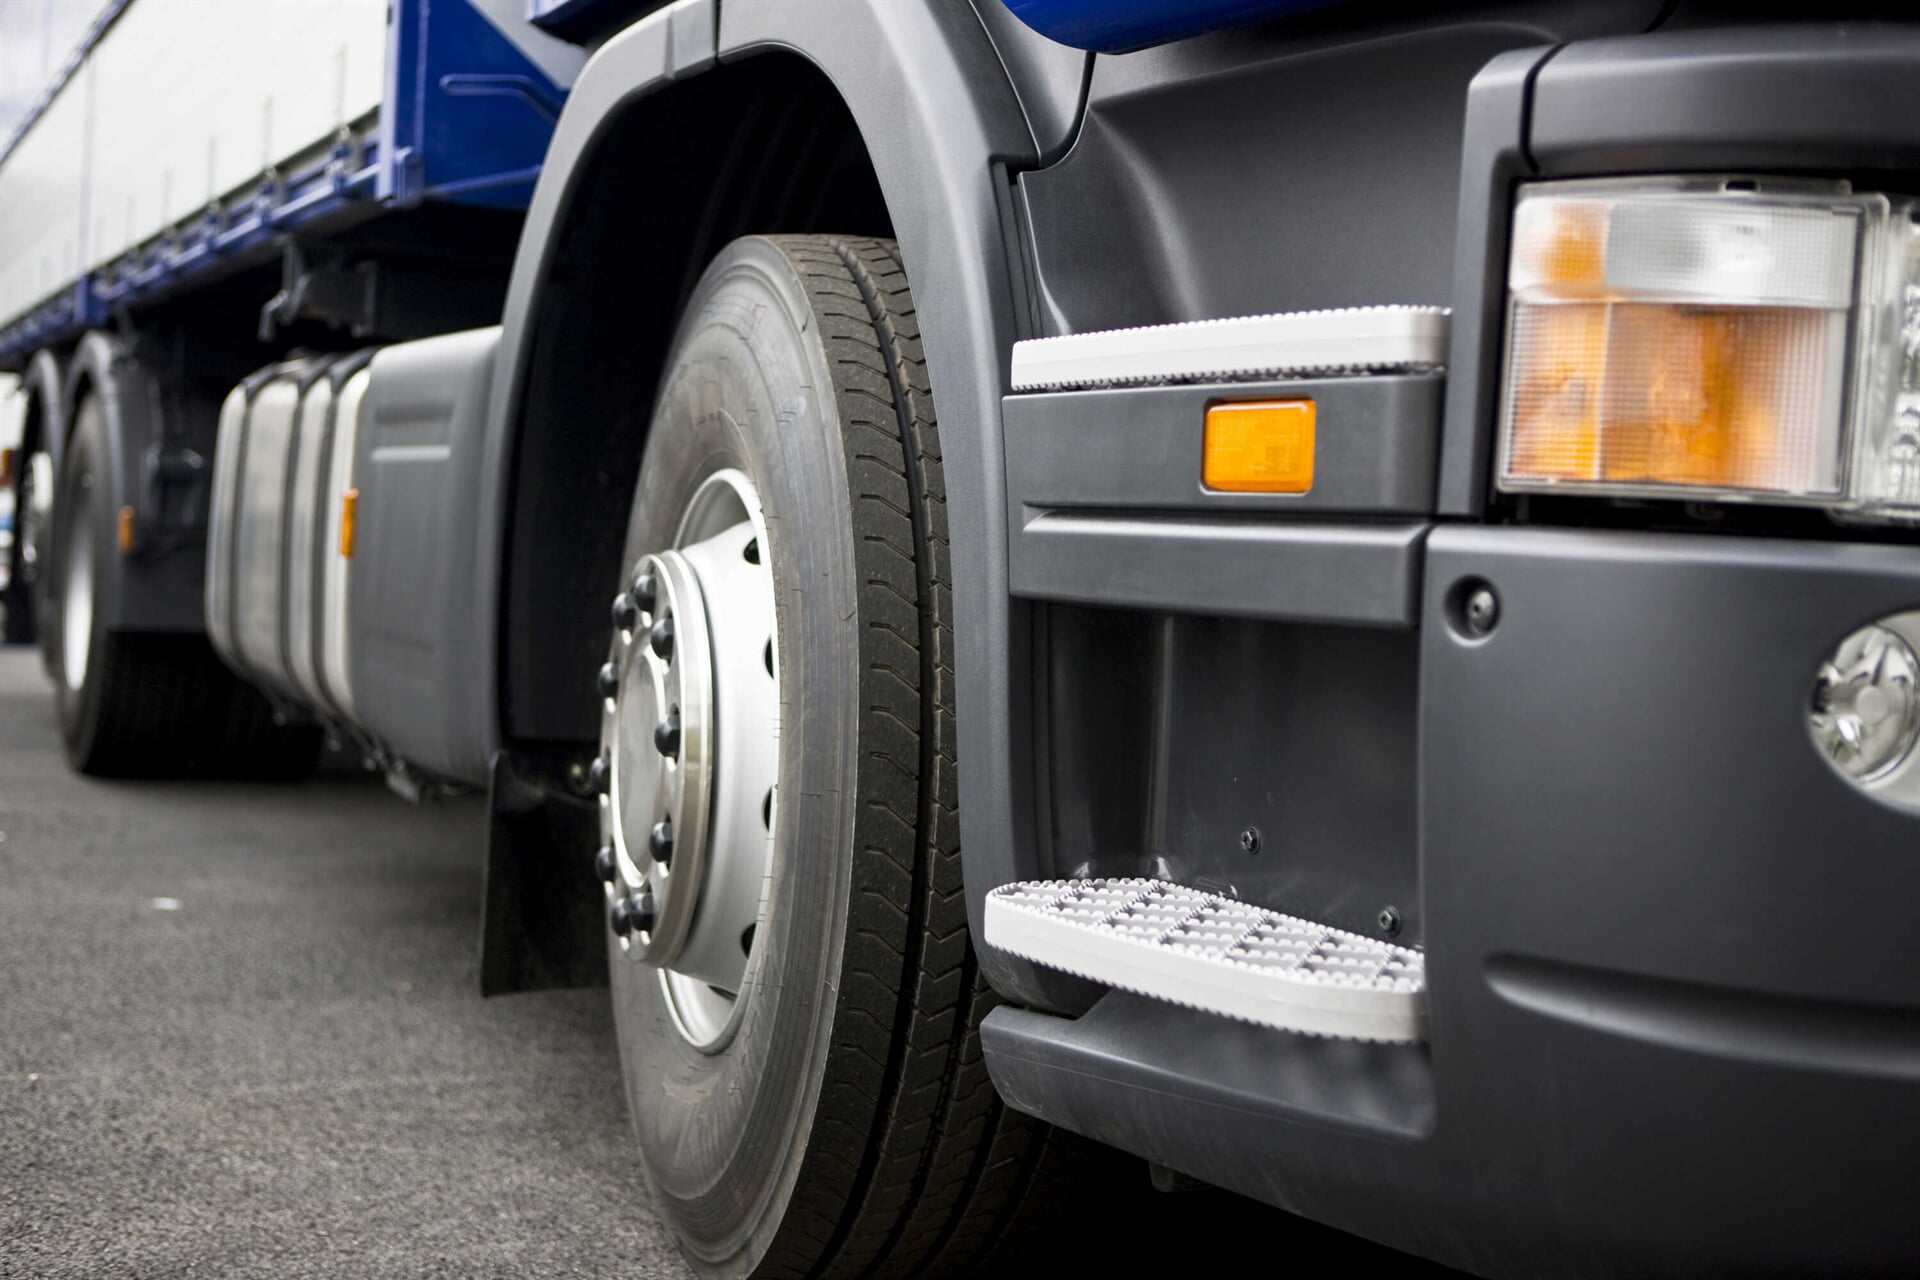 TRUCK SUSPENSION AND SERVICES - Muelles